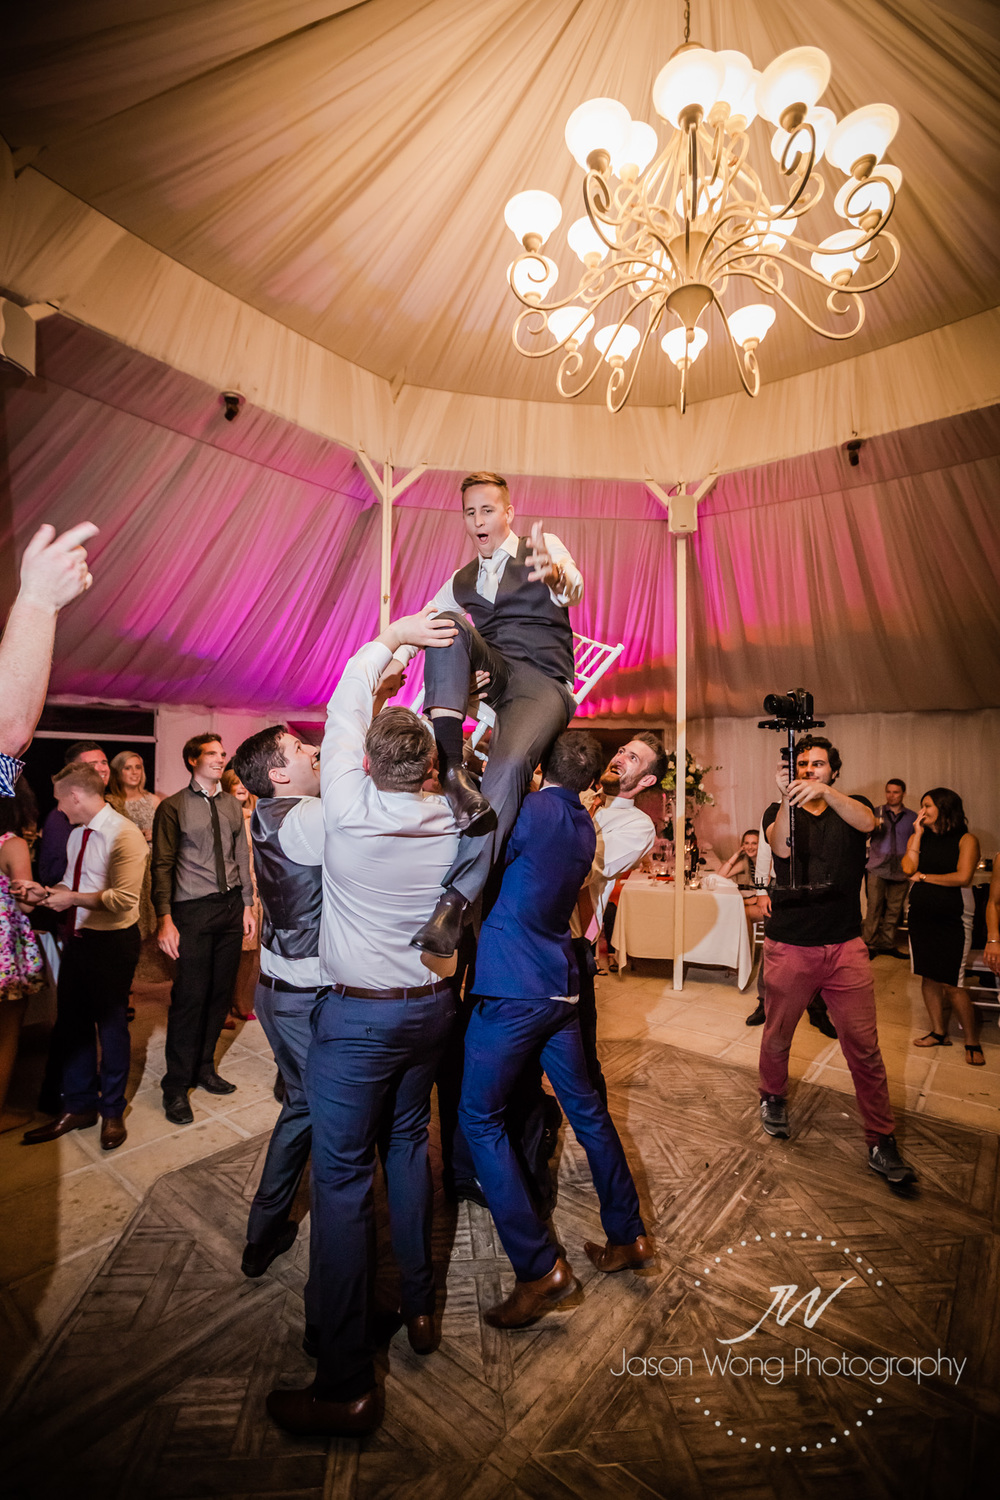 reception-fun-groom-getting-carry.jpg